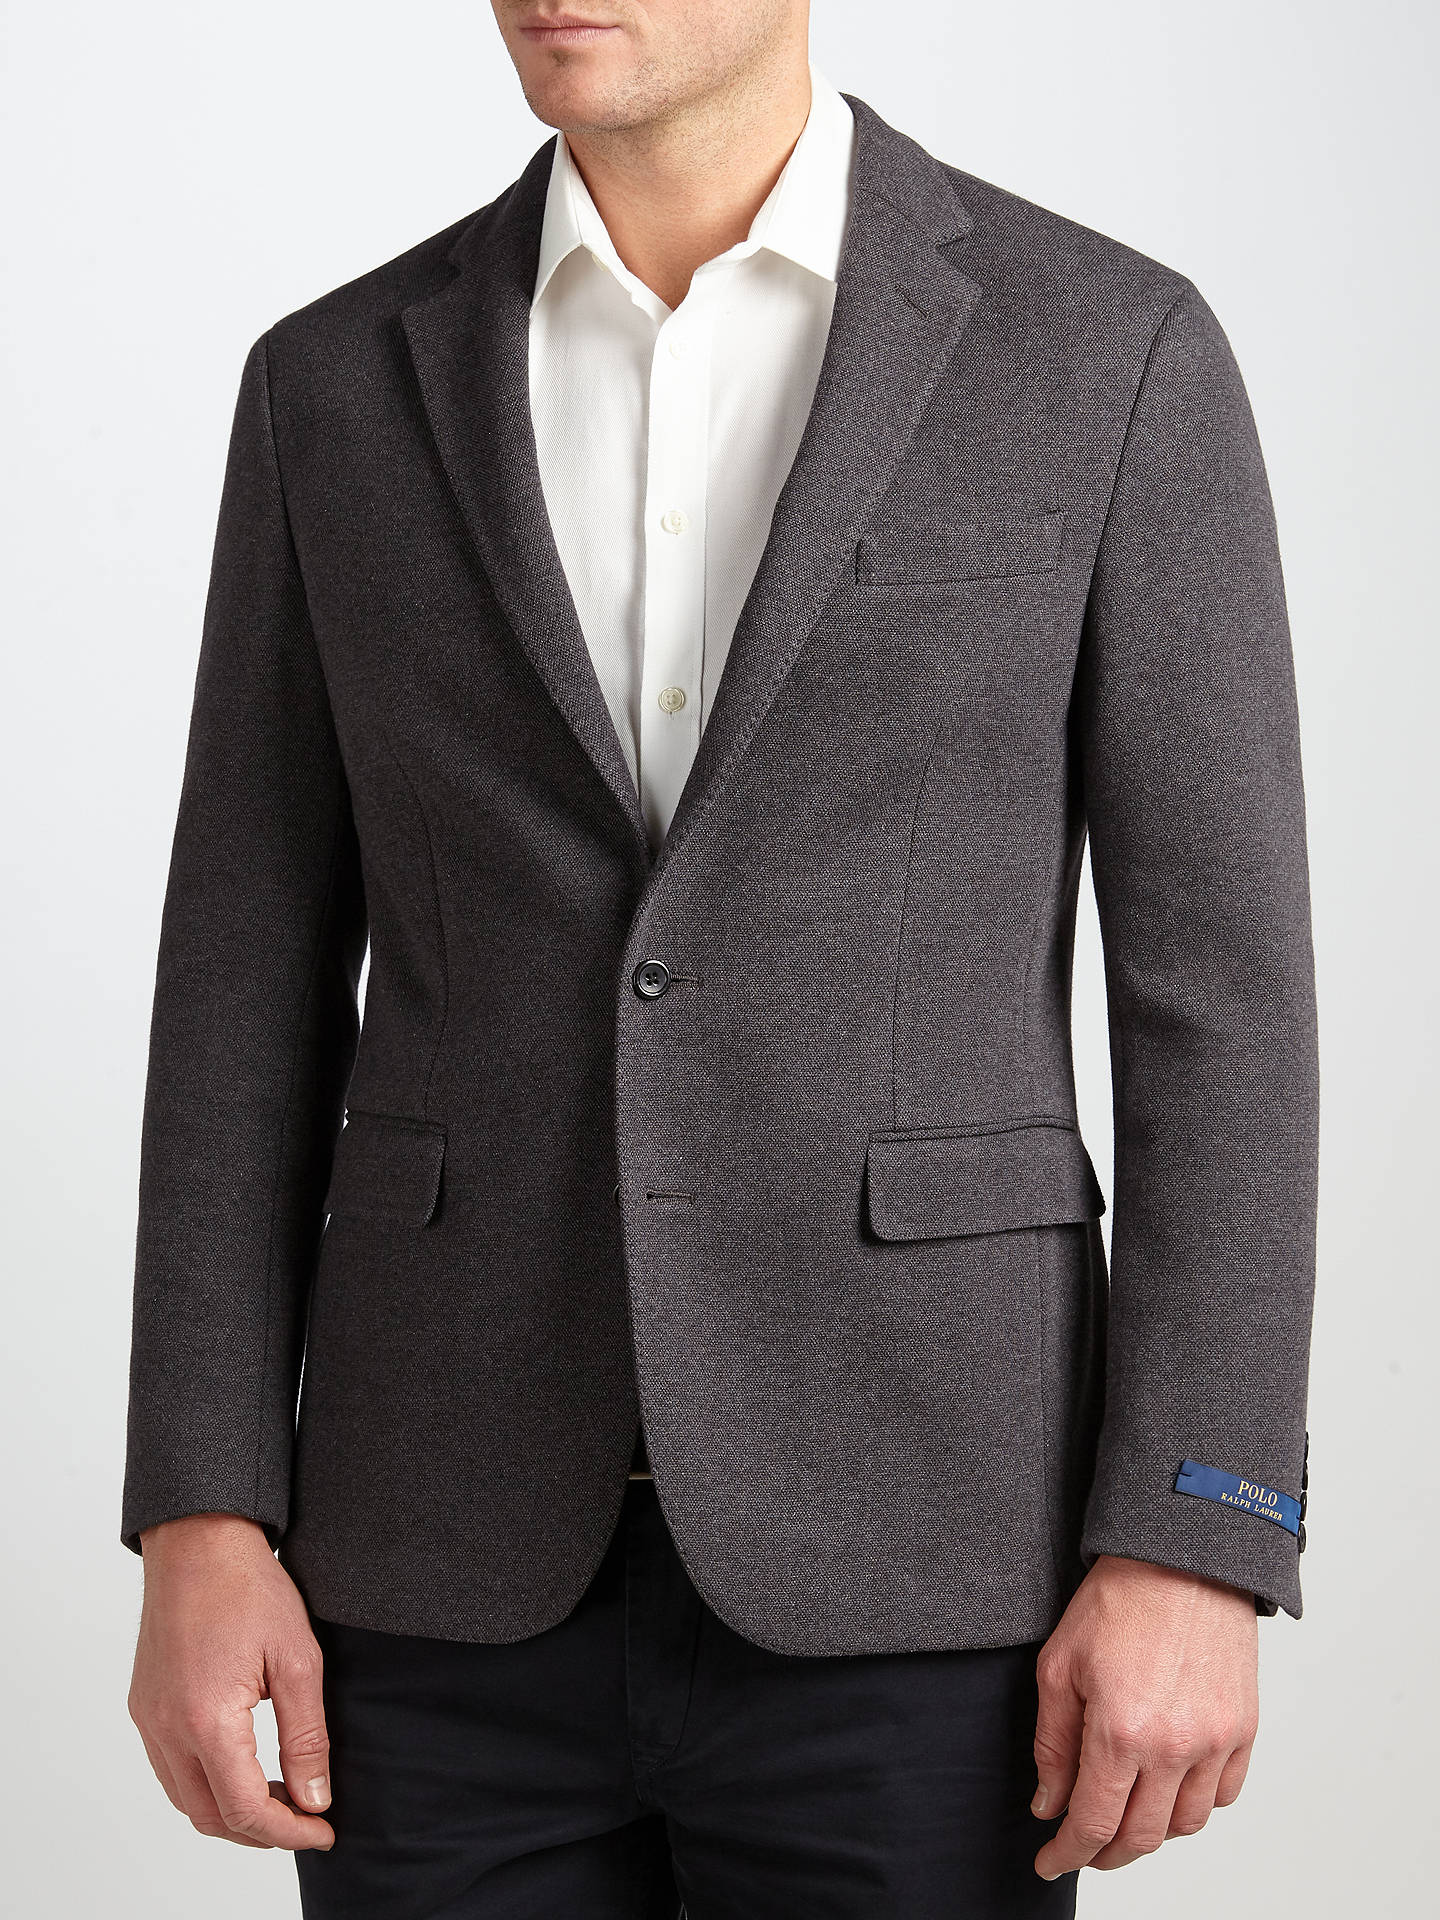 sport coats and blazers buying guide